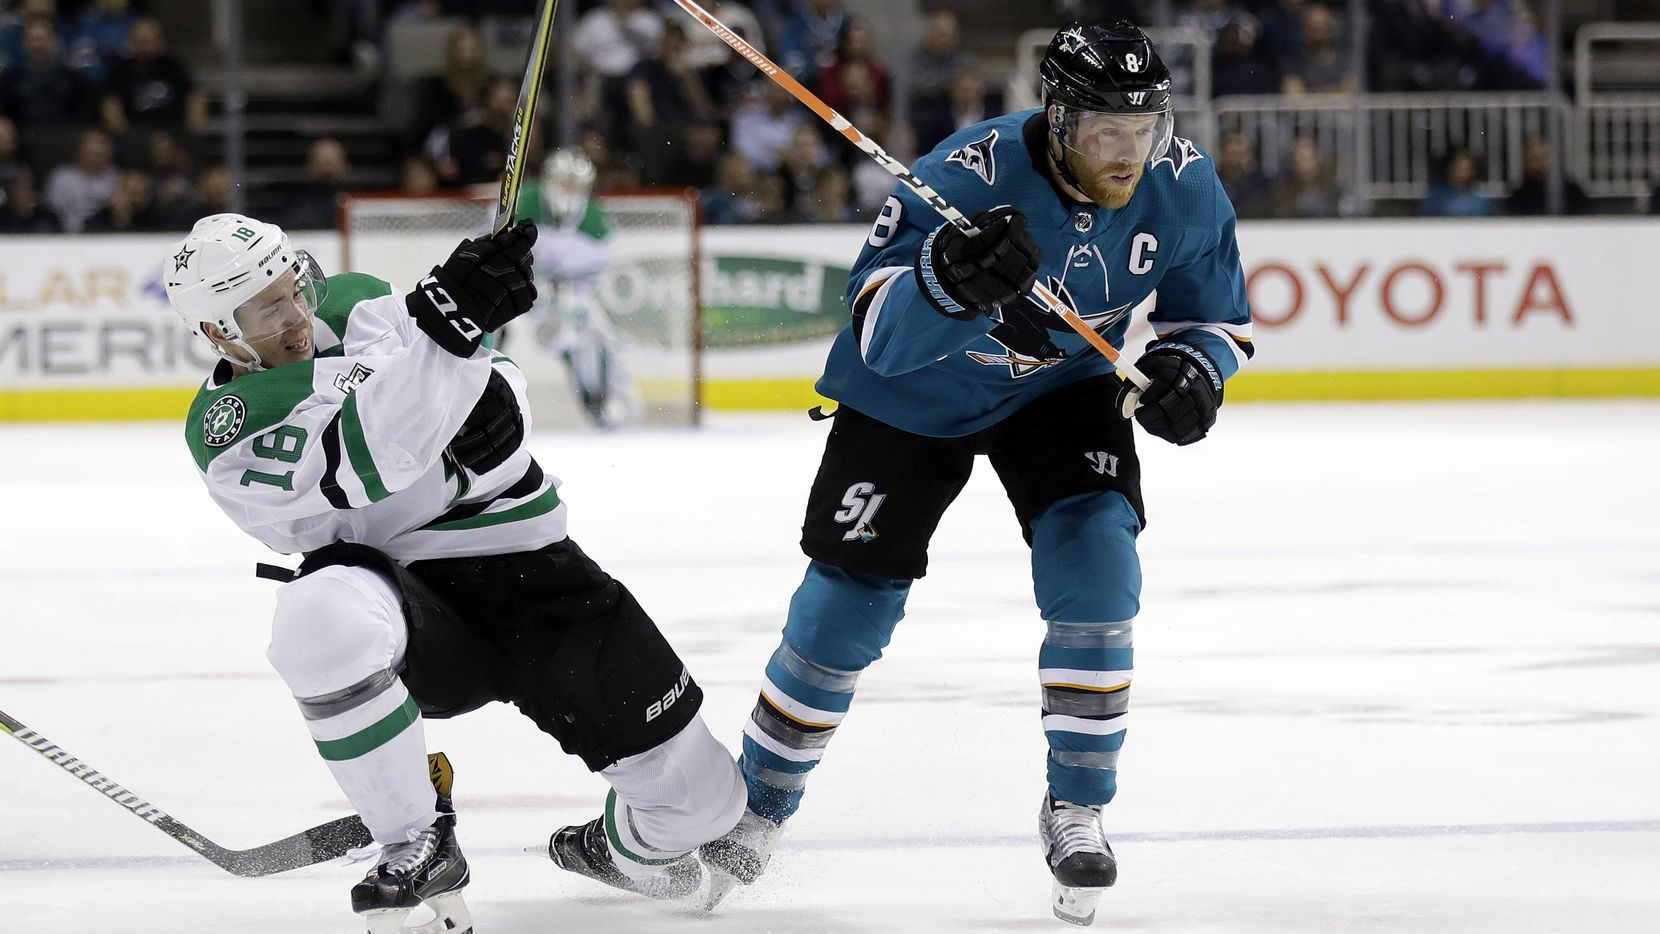 Dallas Stars' Tyler Pitlick, left, defends against San Jose Sharks' Joe Pavelski during the first period of an NHL hockey game Tuesday, April 3, 2018, in San Jose, Calif. (AP Photo/Marcio Jose Sanchez)